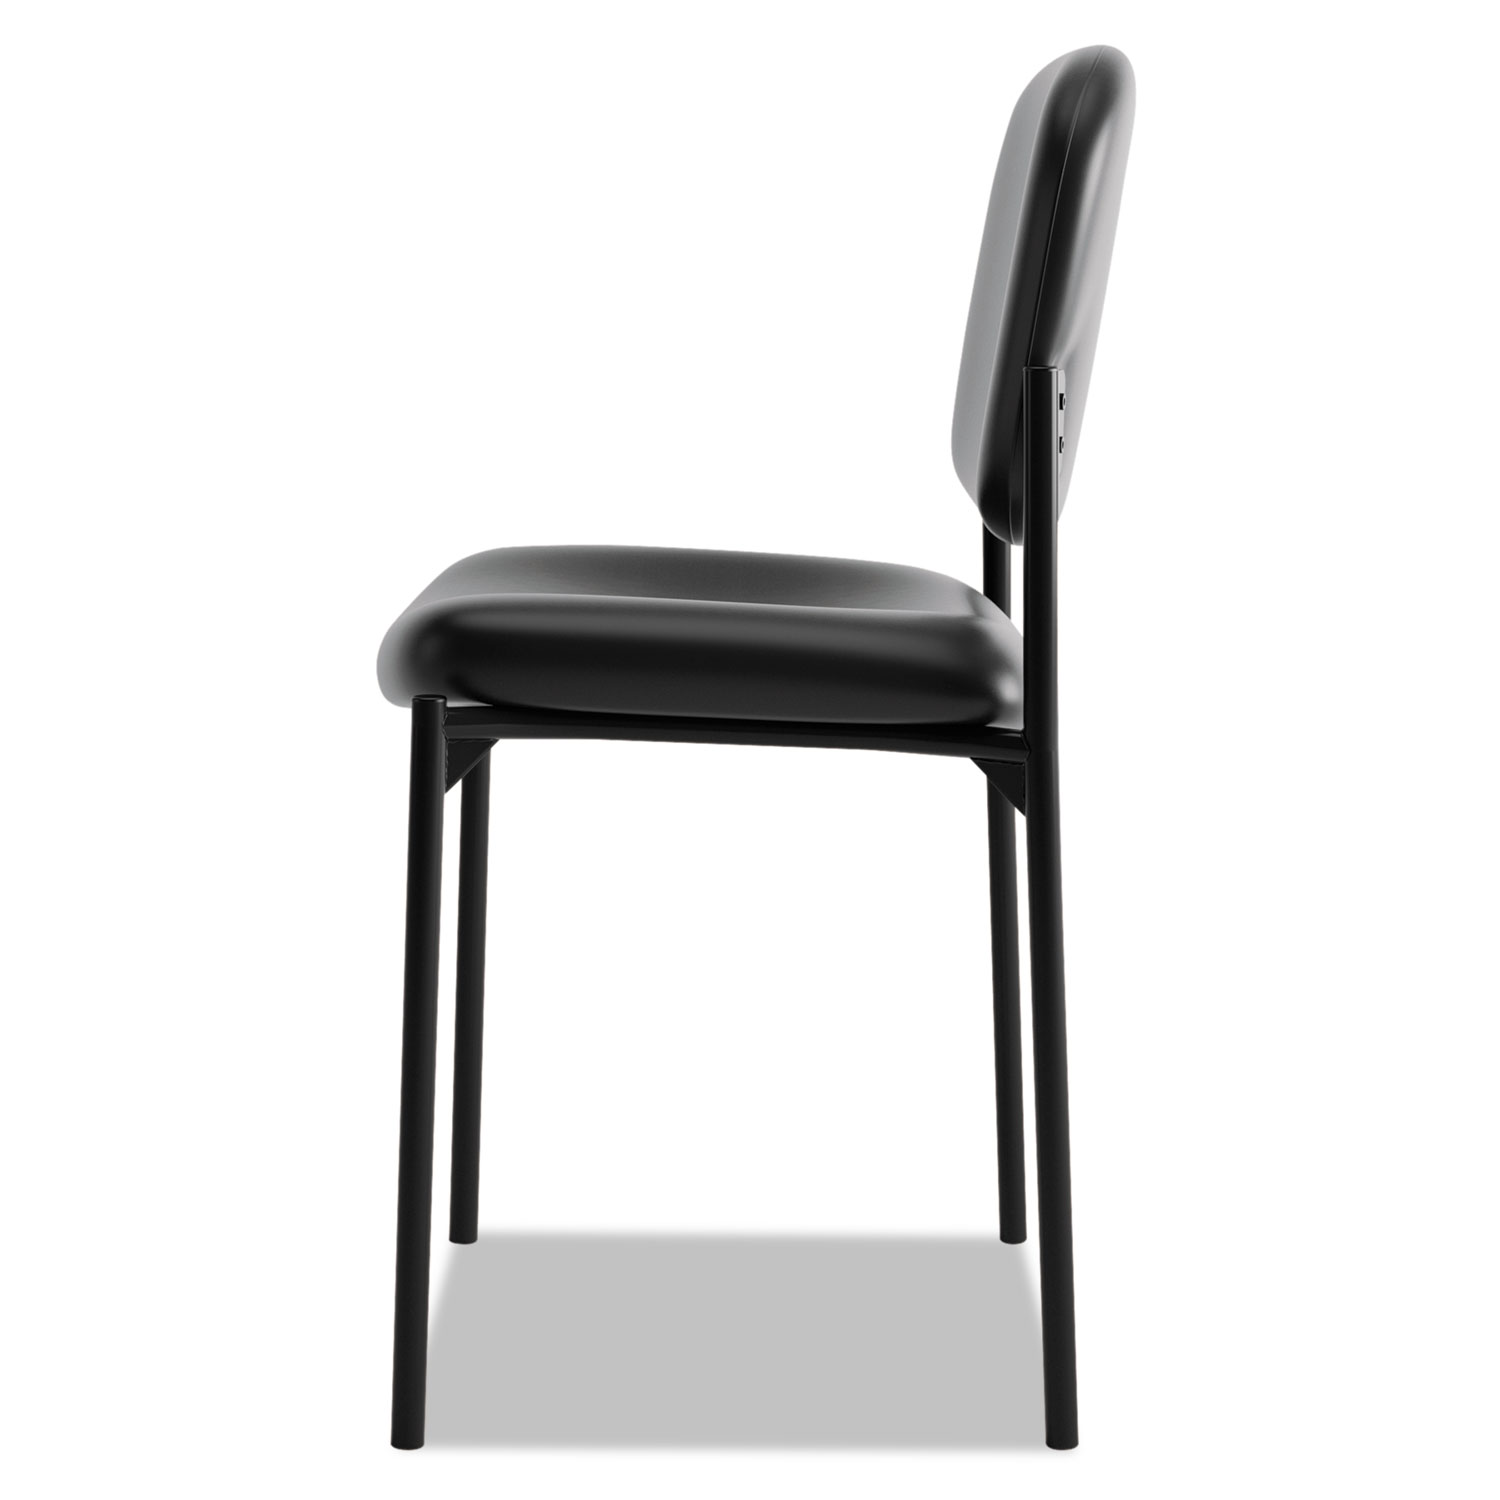 staples stacking chairs amish 3 in 1 highchair plans vl606 series armless guest chair by hon